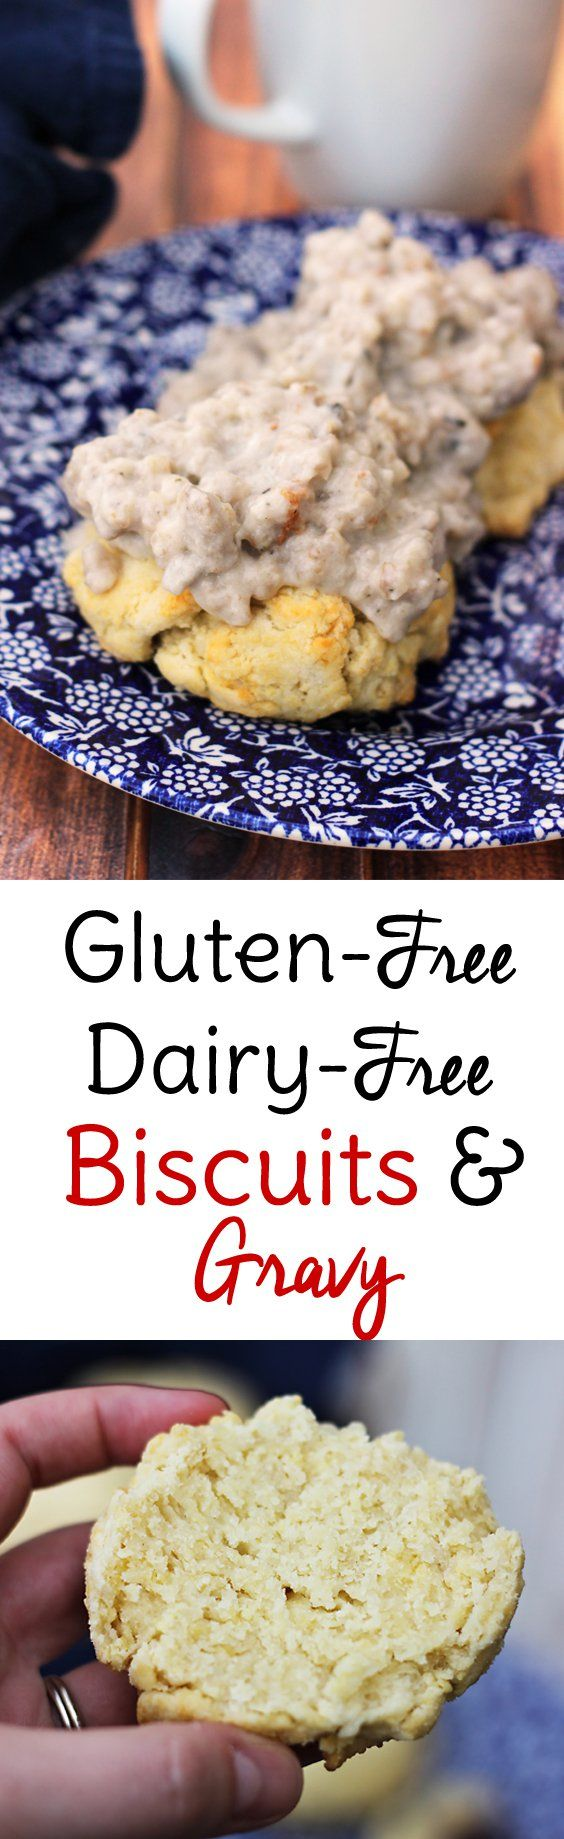 Gluten and Dairy free biscuits and gravy! (Cashew milk) Both the biscuits and the sausage breakfast gravy are free of dairy and gluten and taste as great as the originals!